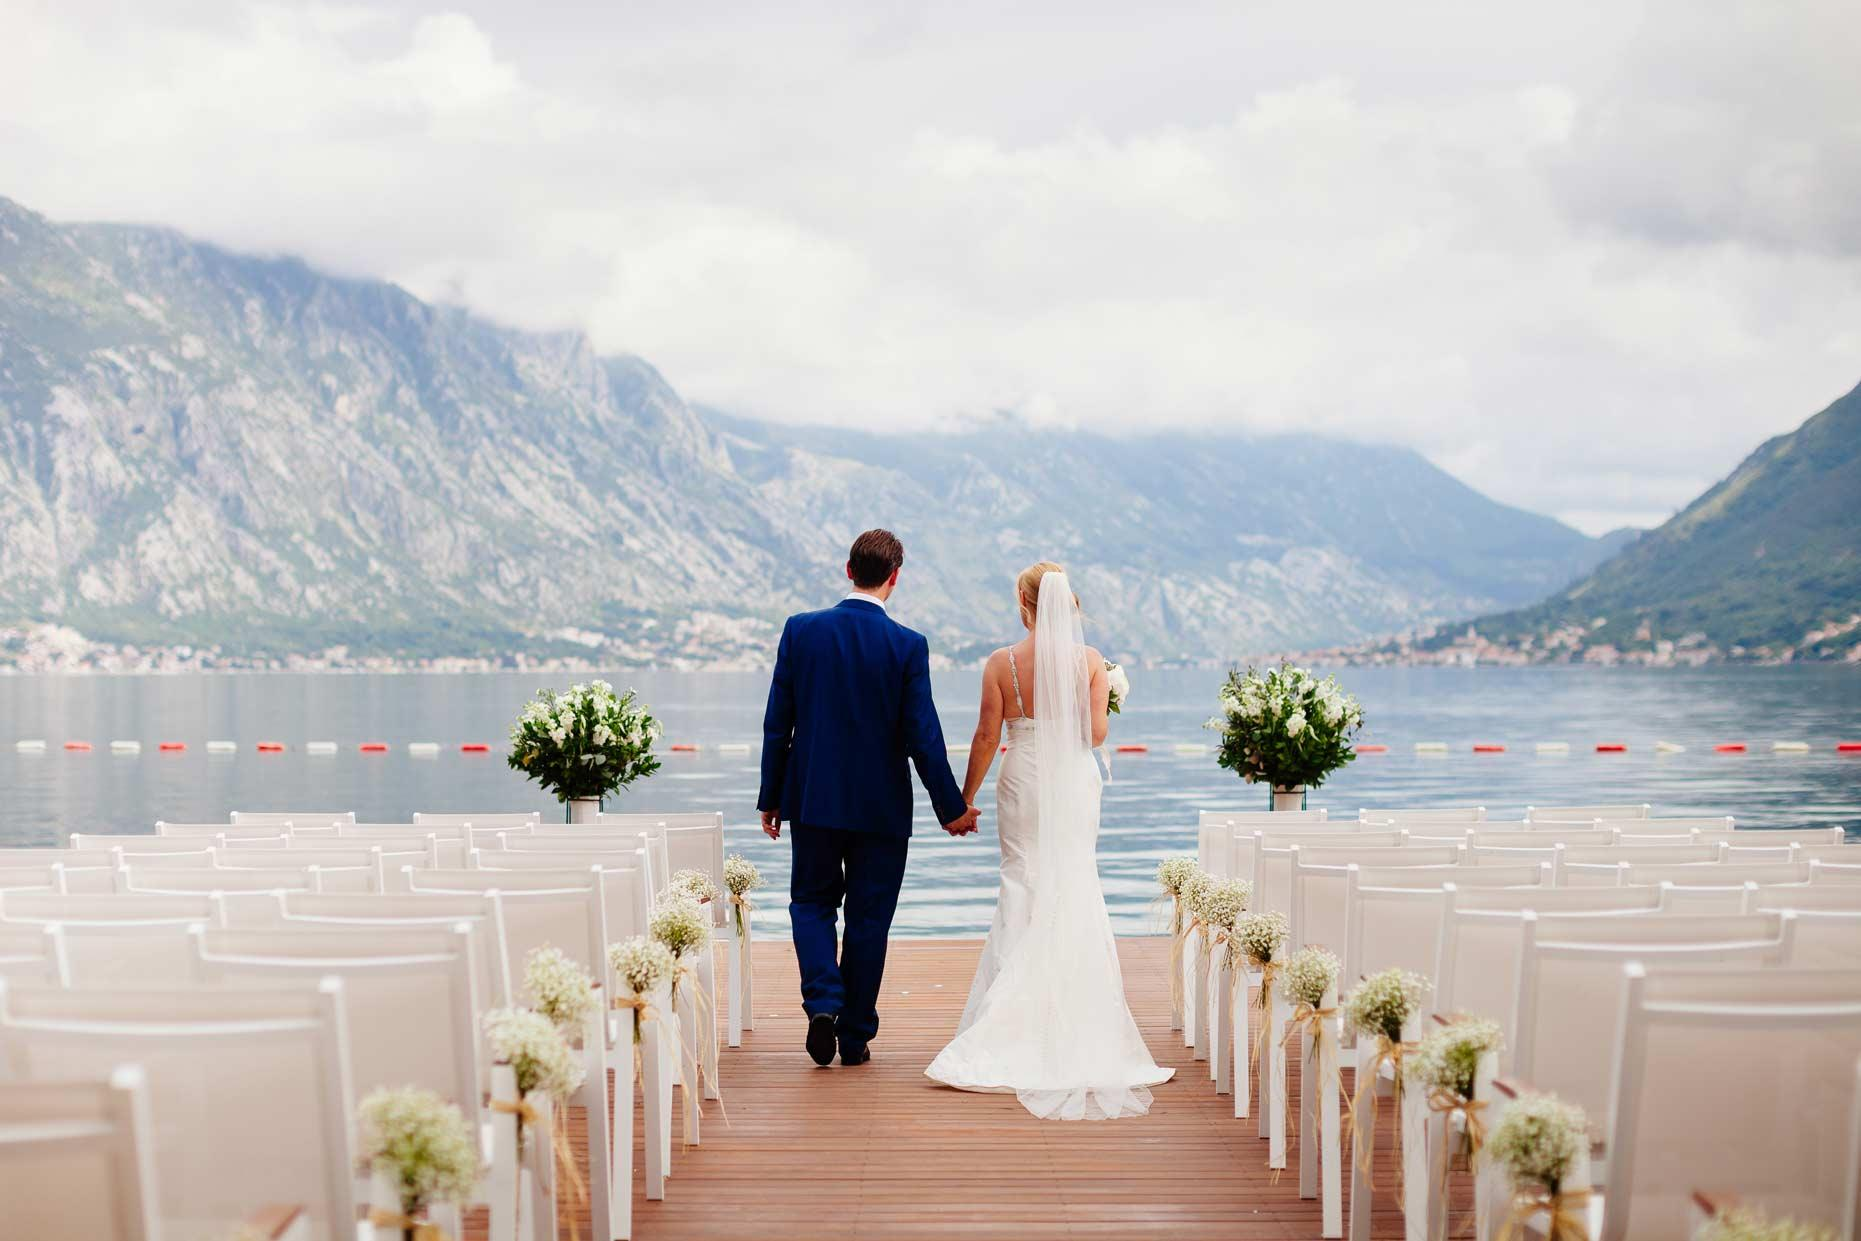 D:\Работа\SEO\GUEST POSTS\POSTS 2019\15.07.2019\Ryan 10 Tips for Planning a Destination Wedding\how-to-plan-a-destination-wedding-newlyeds-outdoor-wedding.jpg